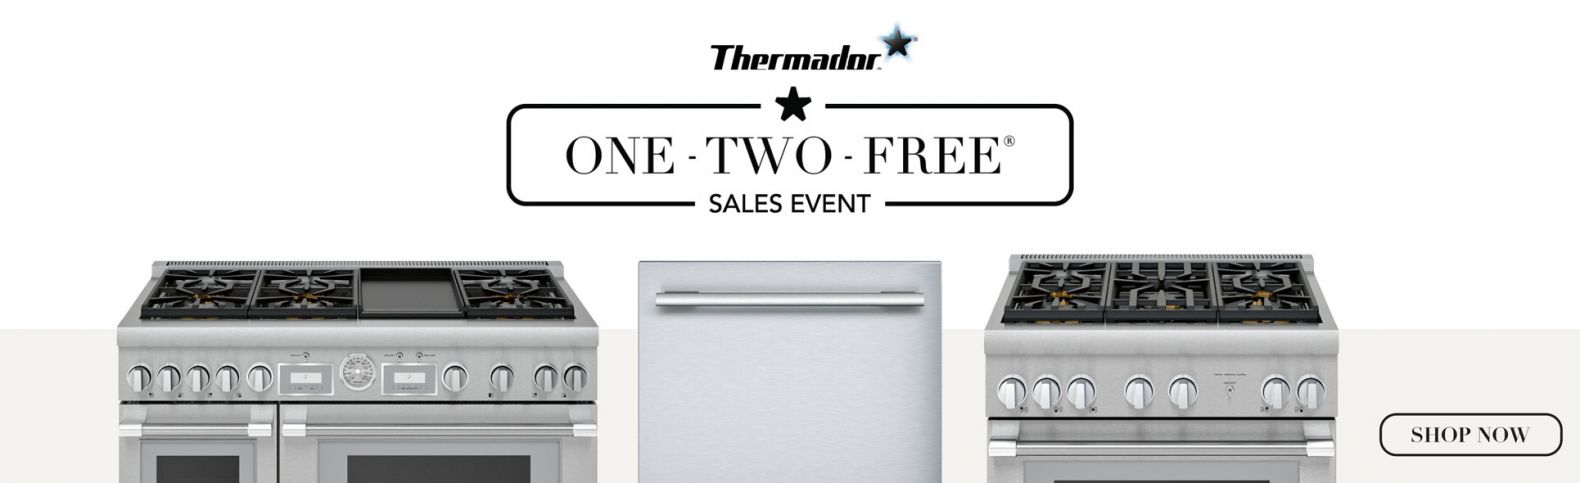 Thermador 1-2-Free Program; Buy a select Range or Walloven & Cooktop, Receive a Free Dishwasher